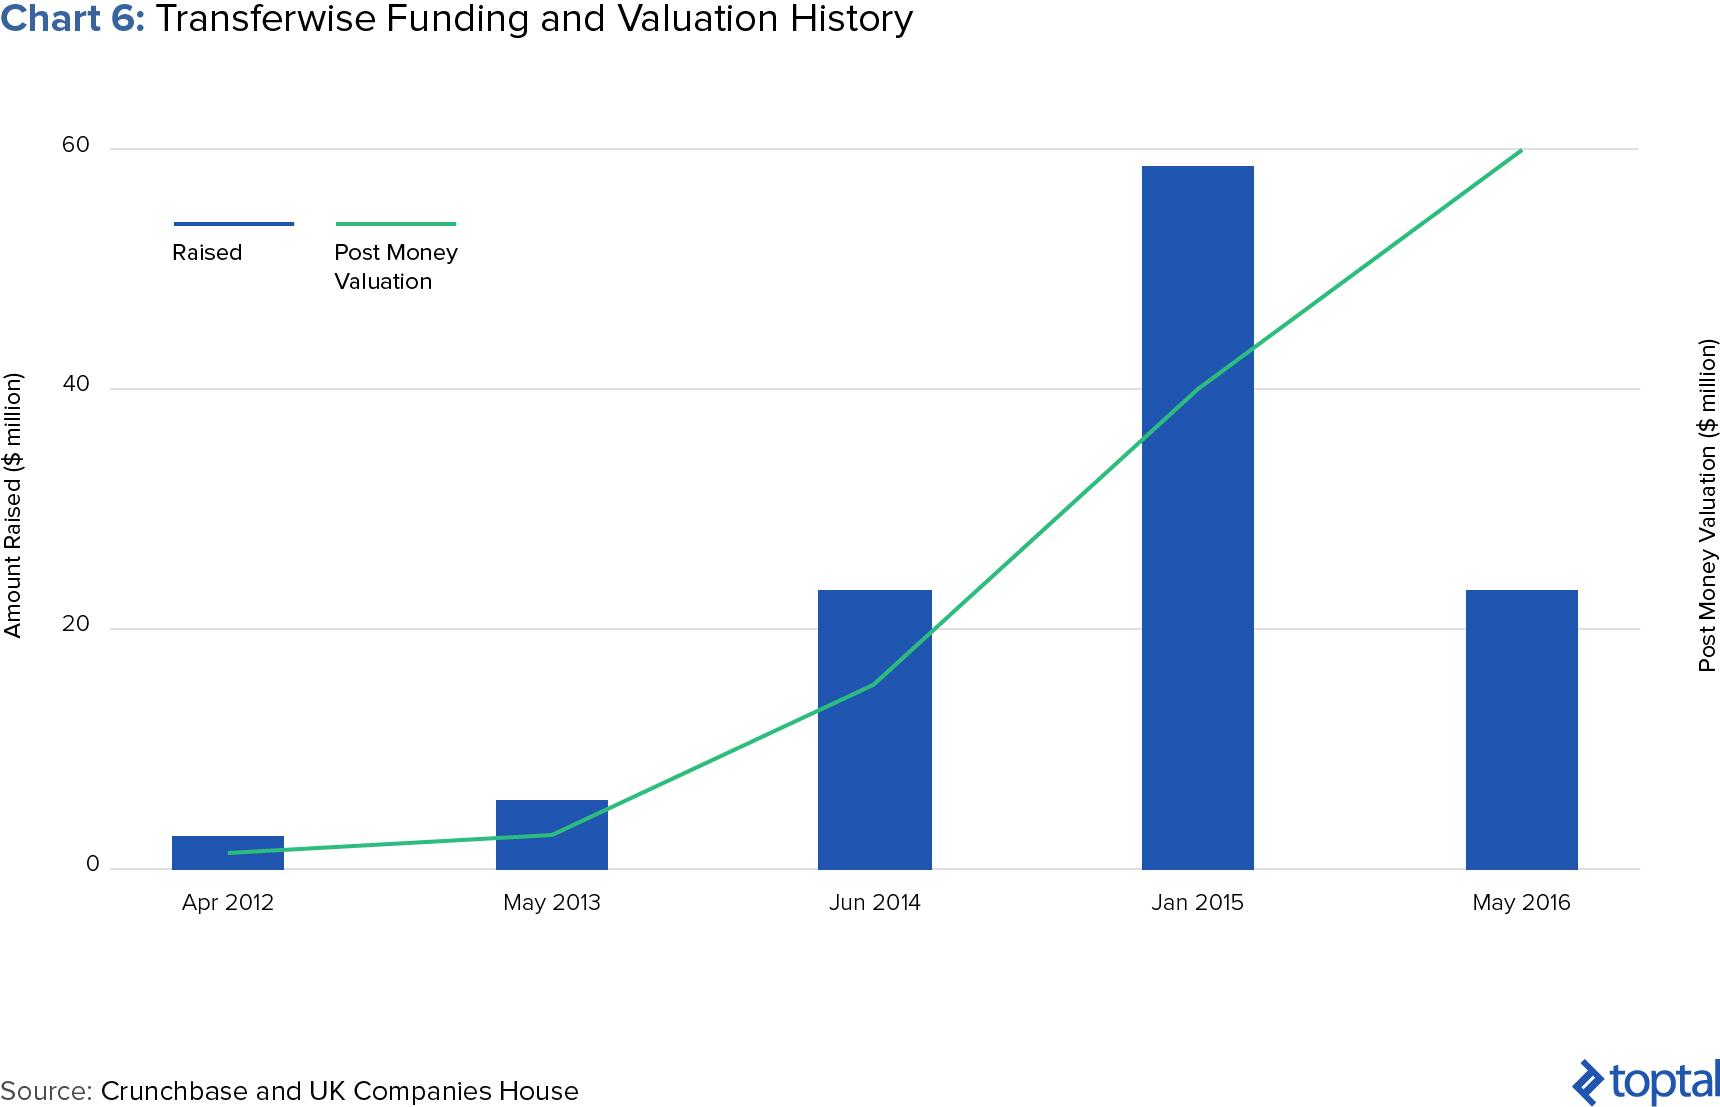 Chart 6: Transferwise Funding and Valuation History